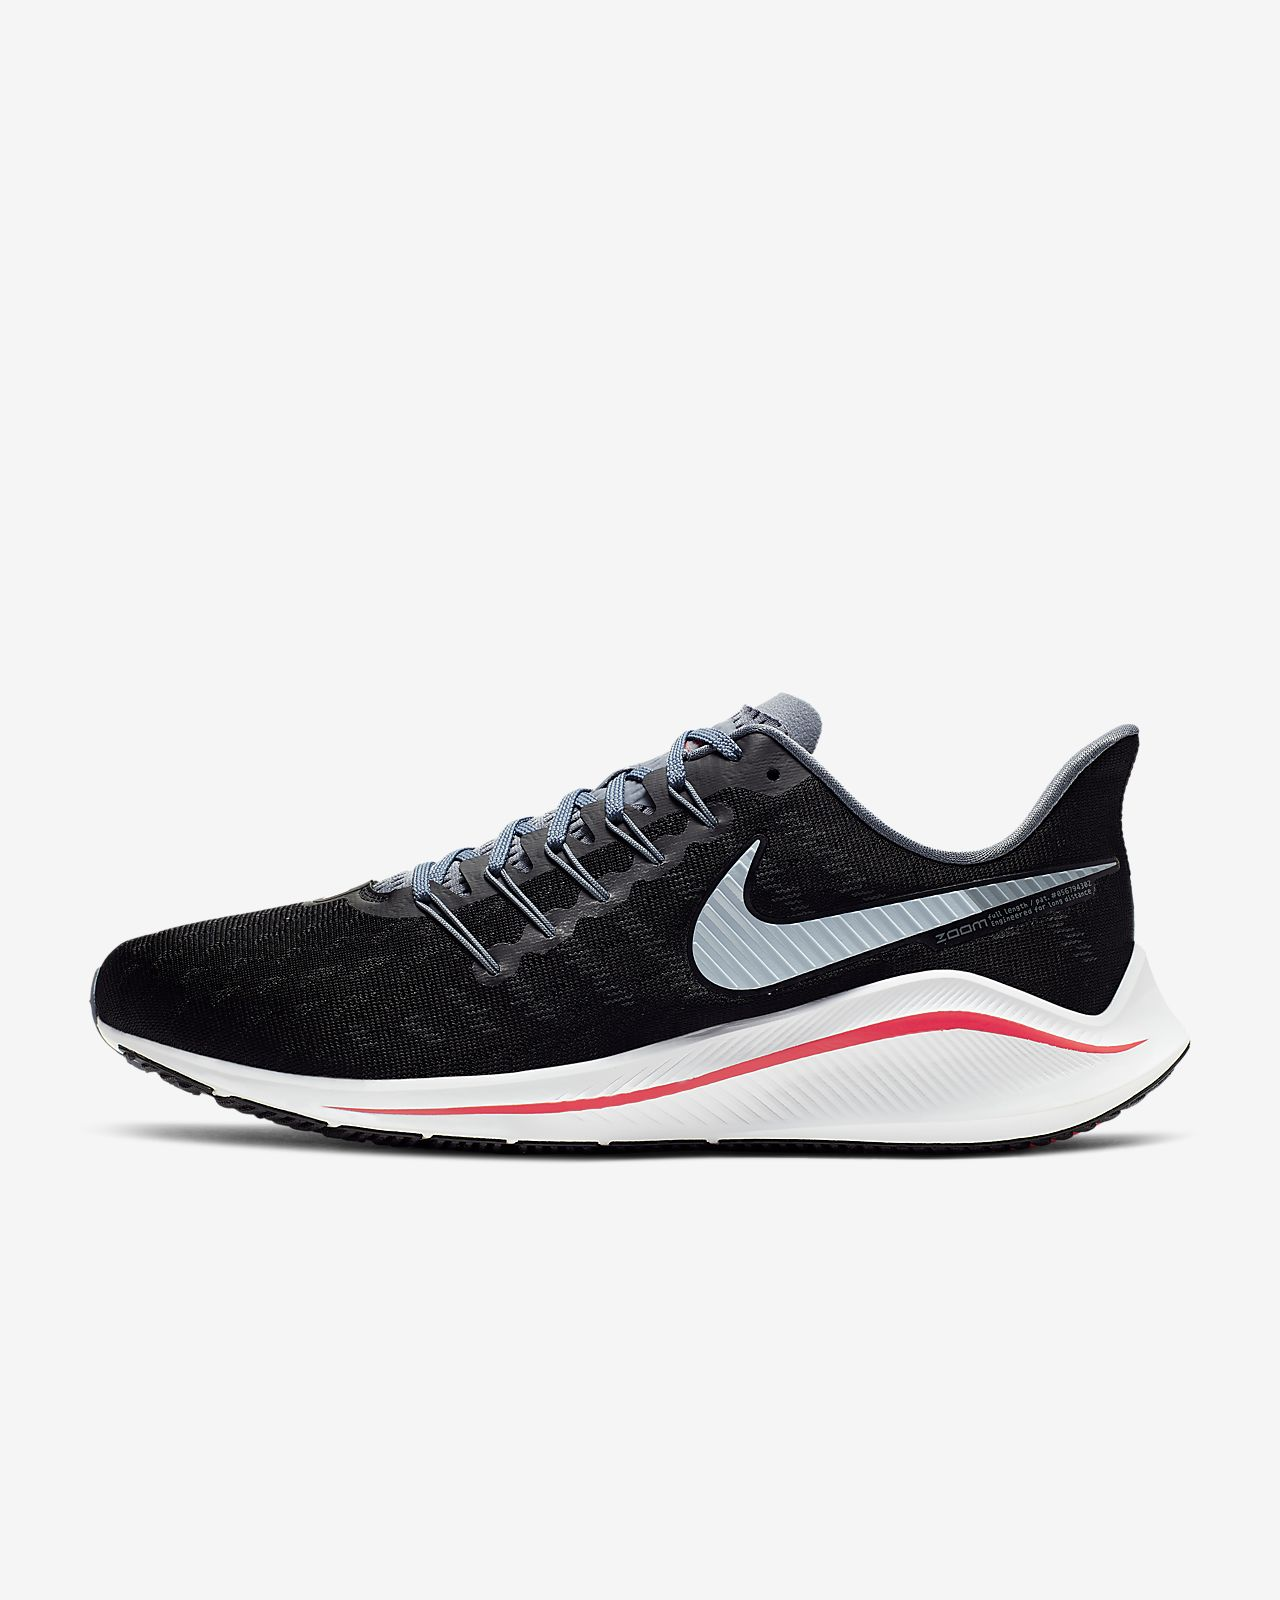 Nike Air Zoom Vomero 14 Men's Running Shoe